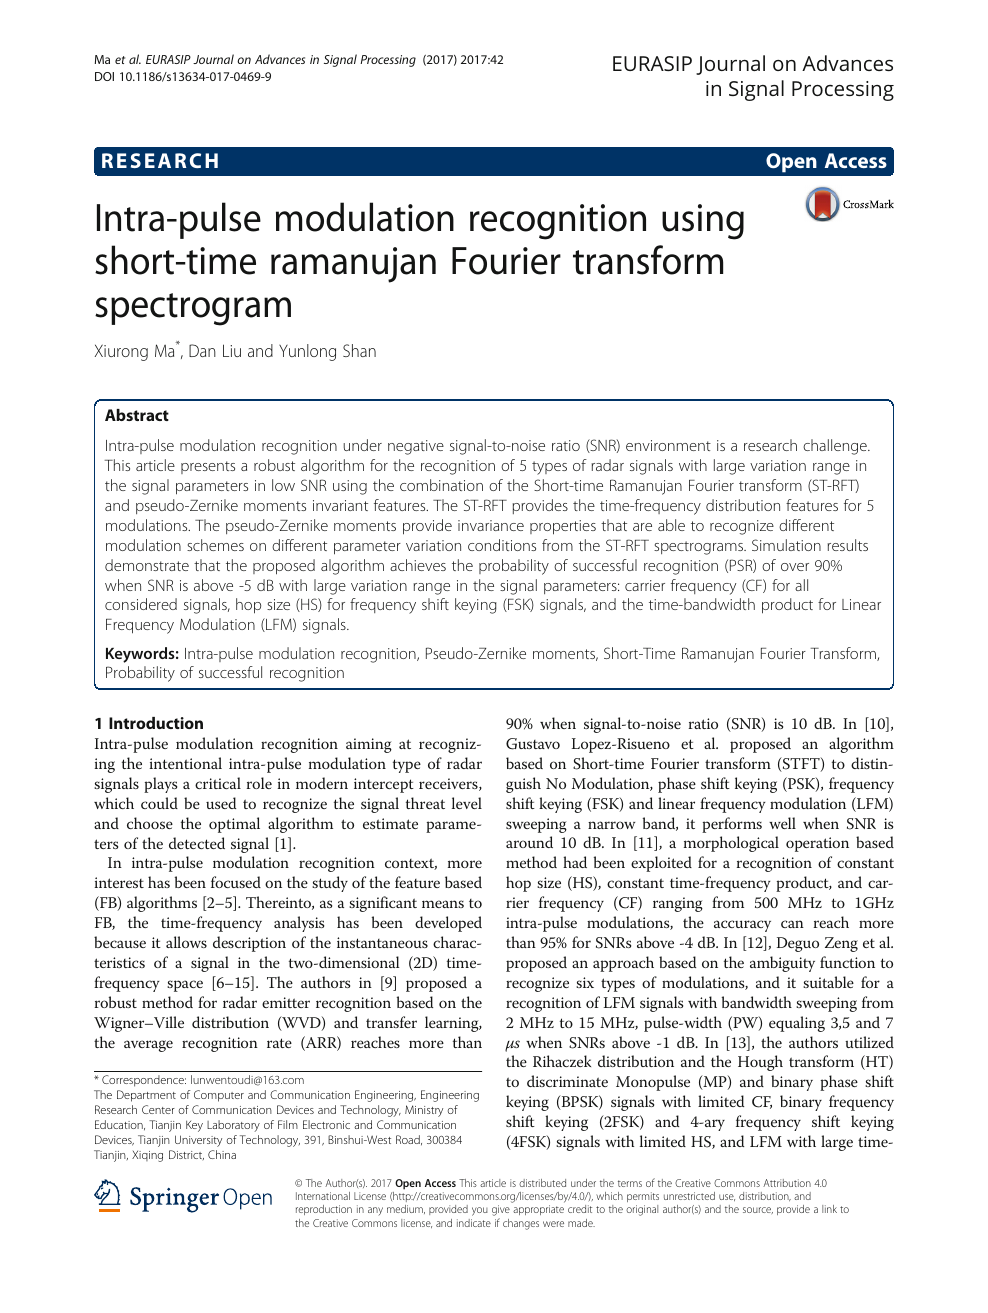 Intra-pulse modulation recognition using short-time